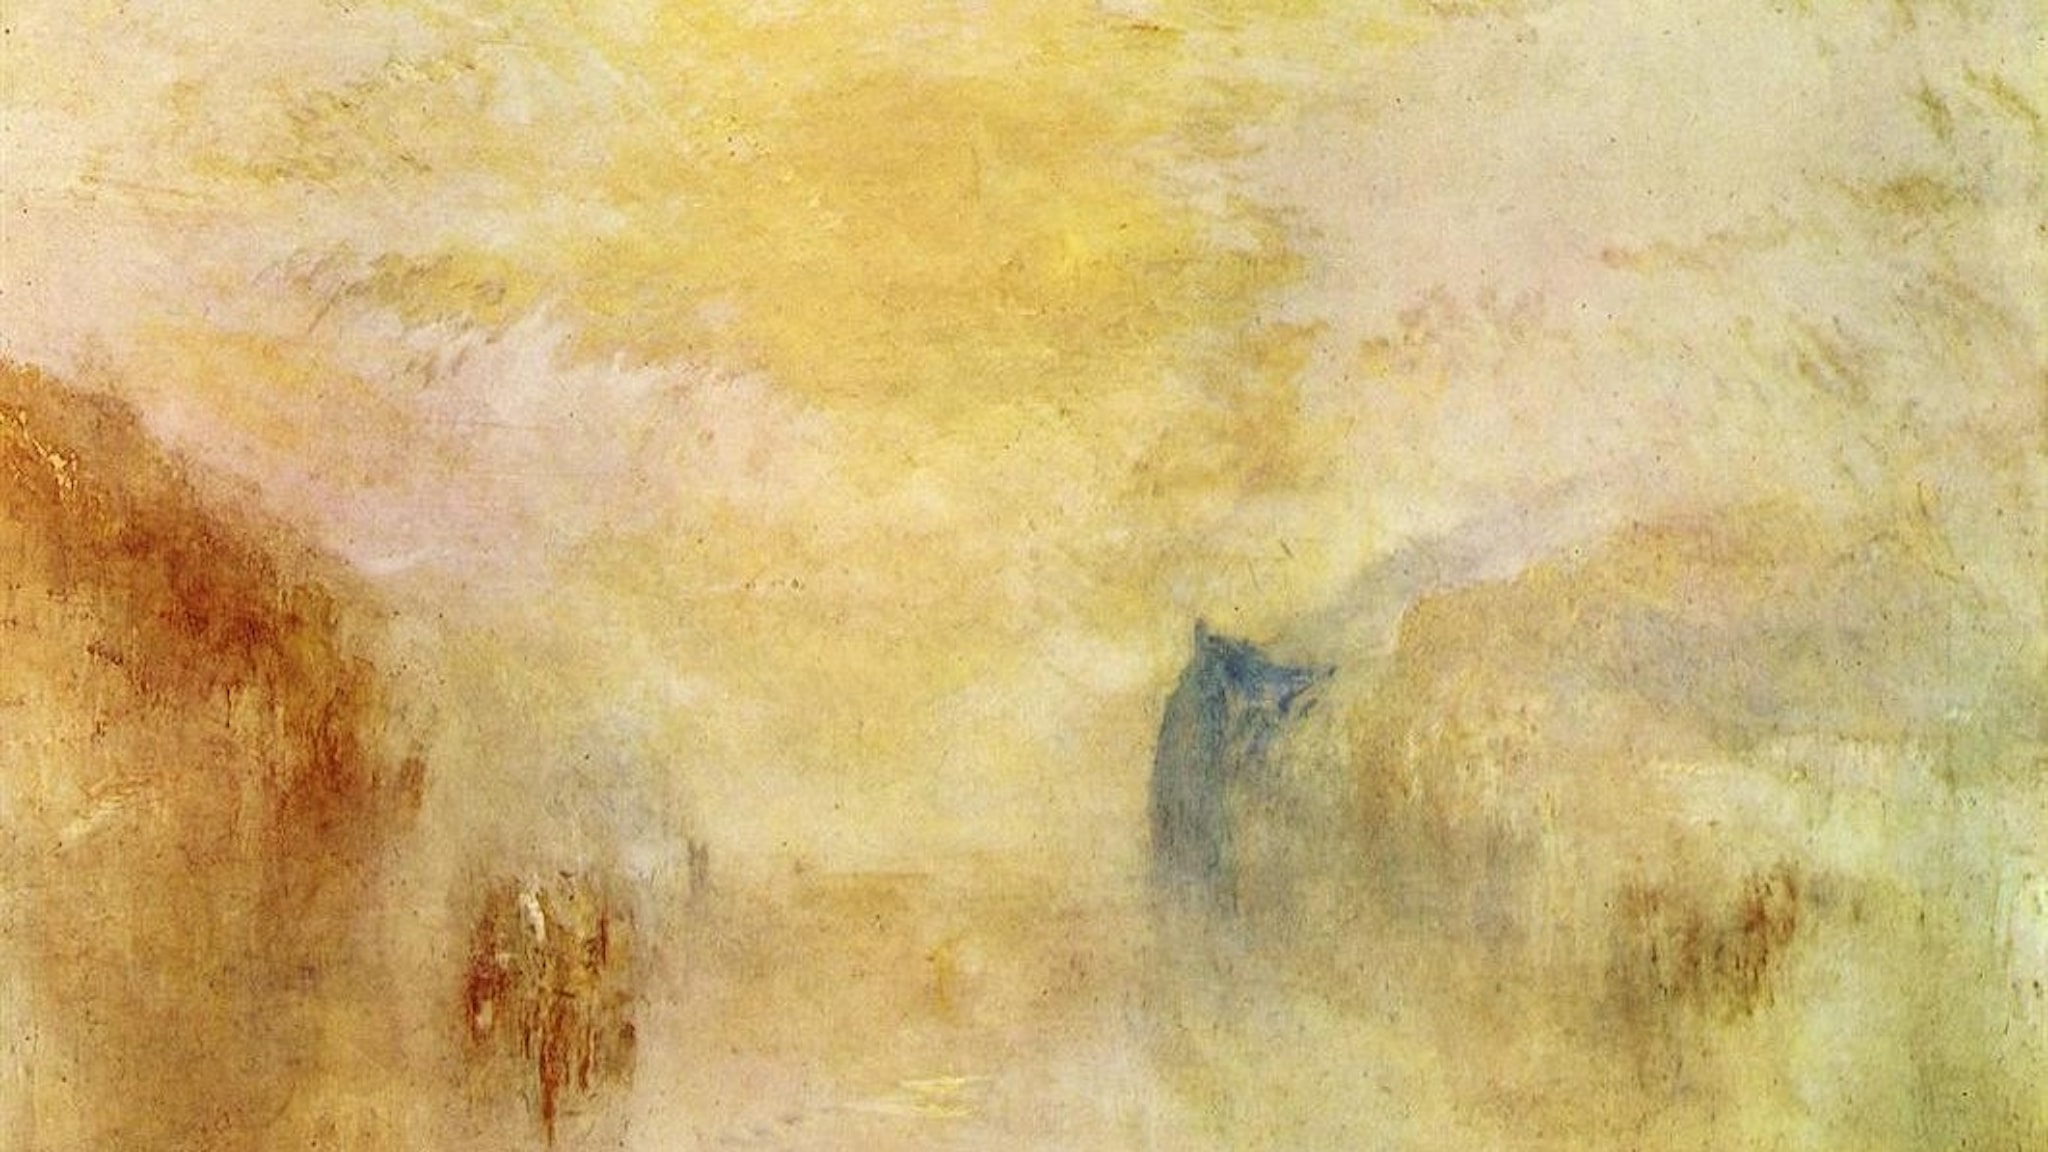 William Turner: Sunrise with a boat between headlands (1840)